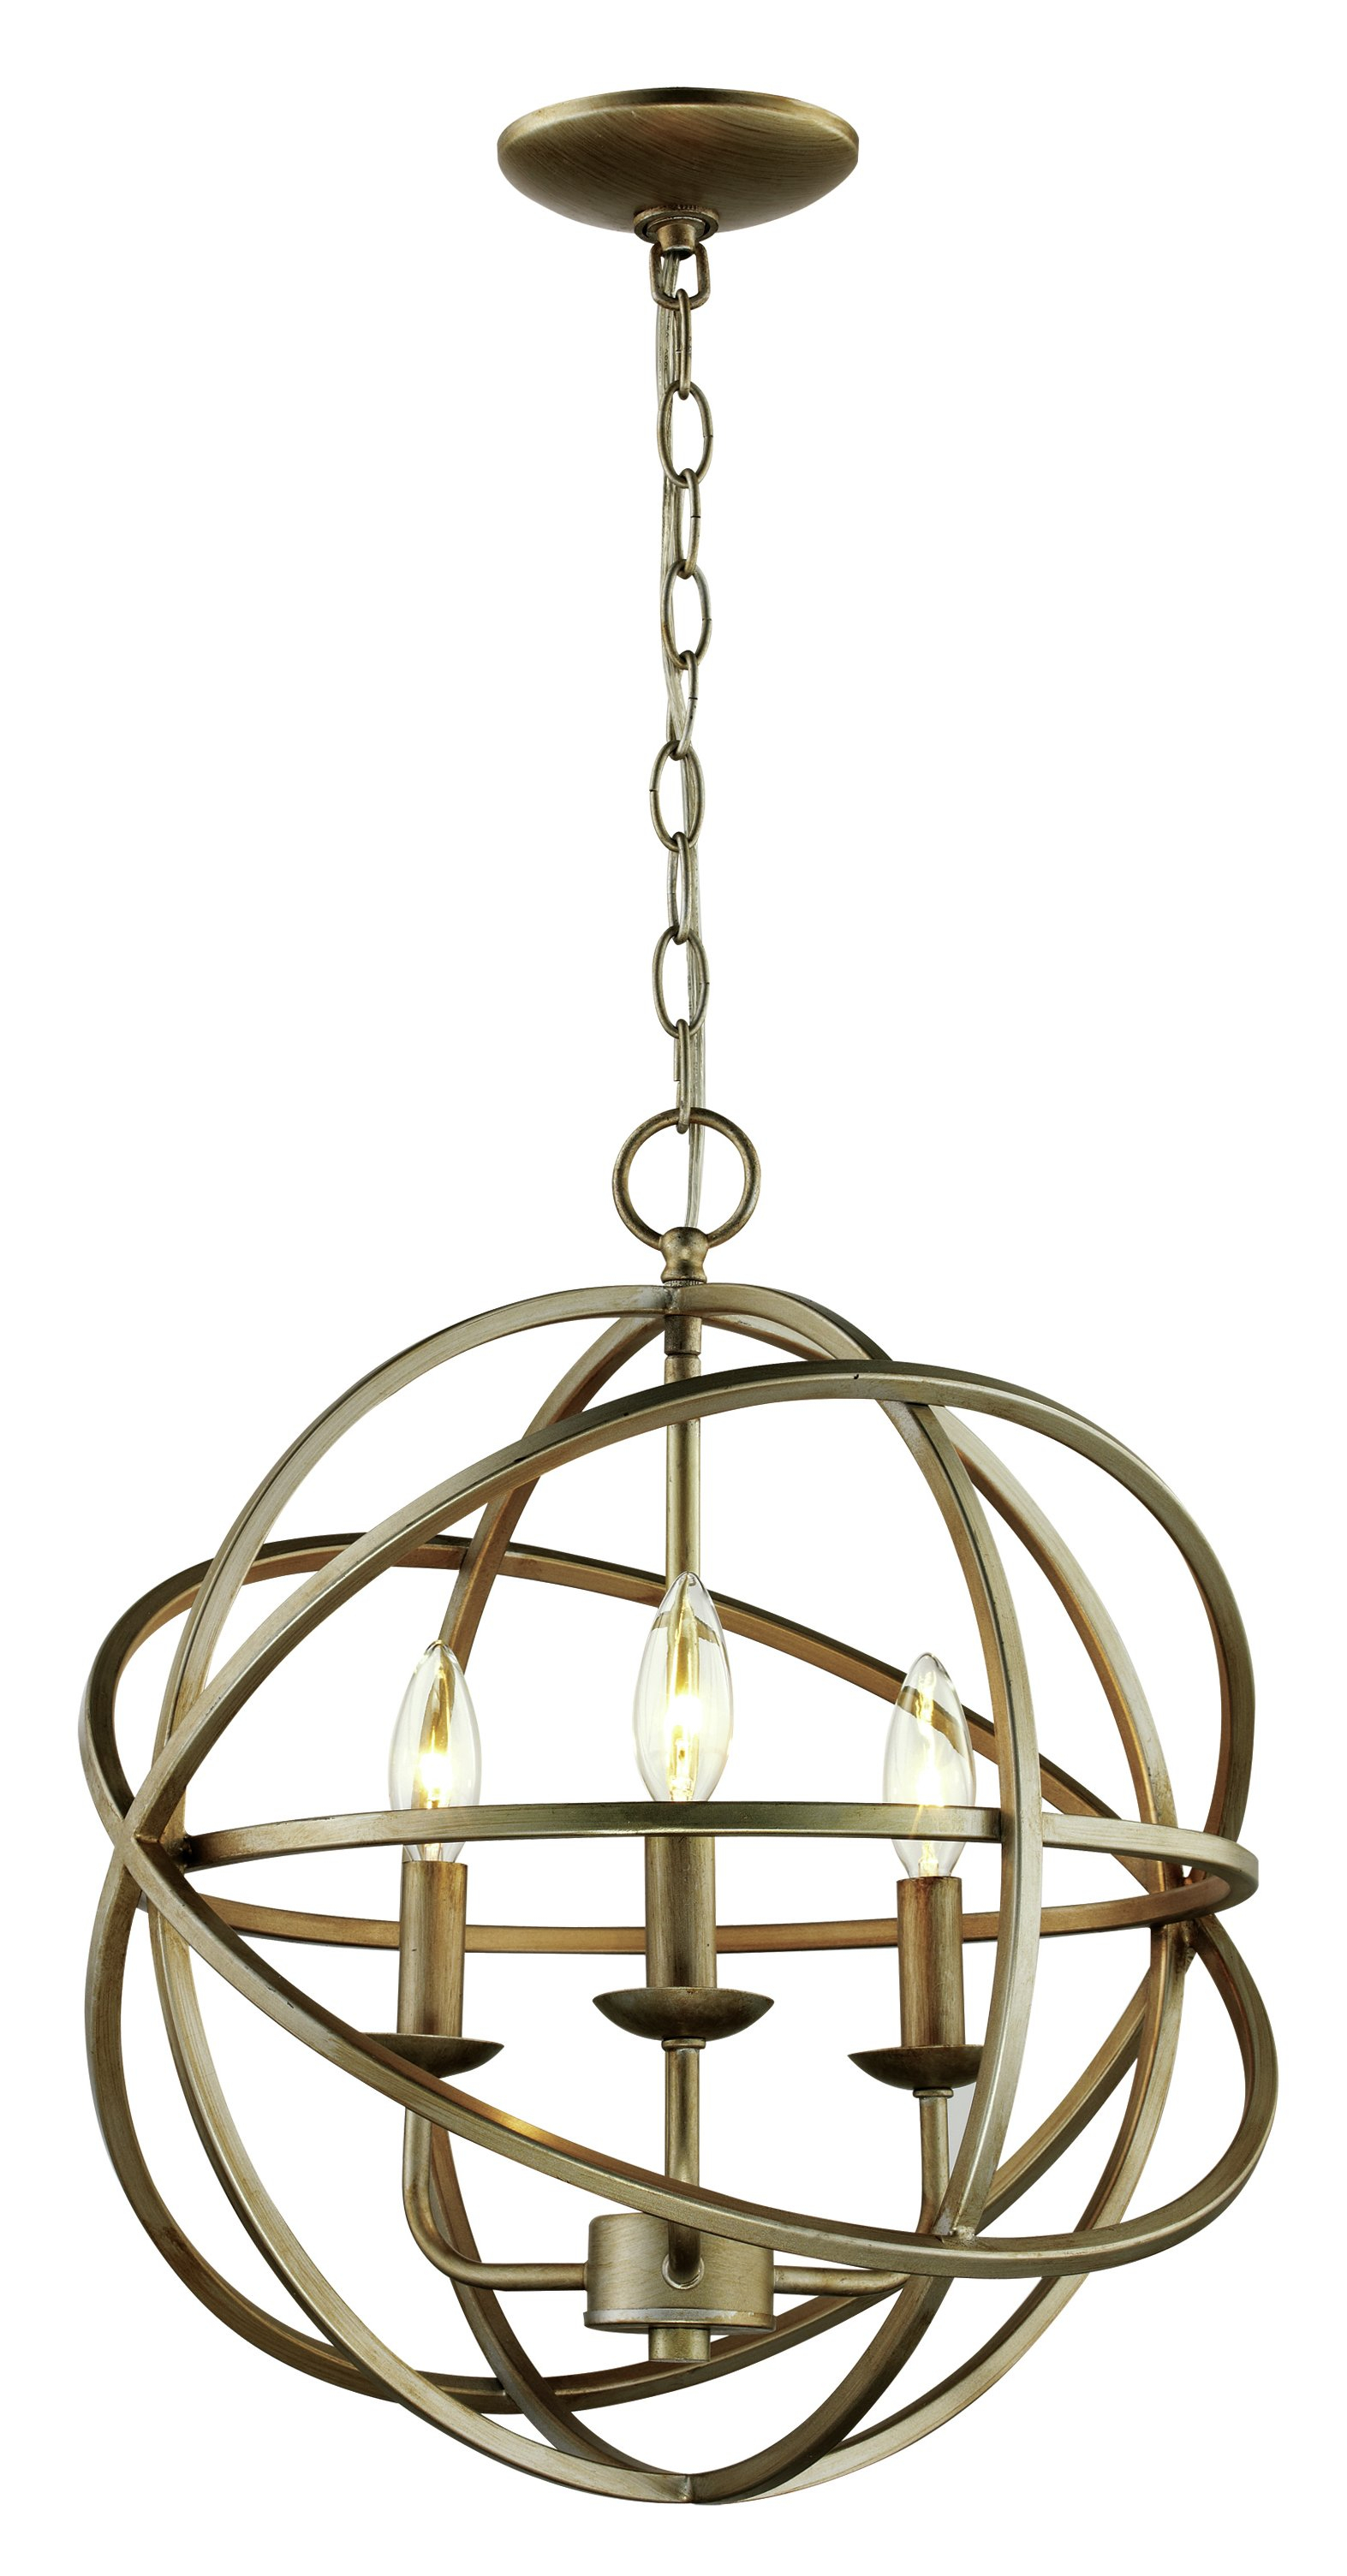 Baitz 3 Light Globe Chandelier With La Barge 3 Light Globe Chandeliers (View 7 of 30)